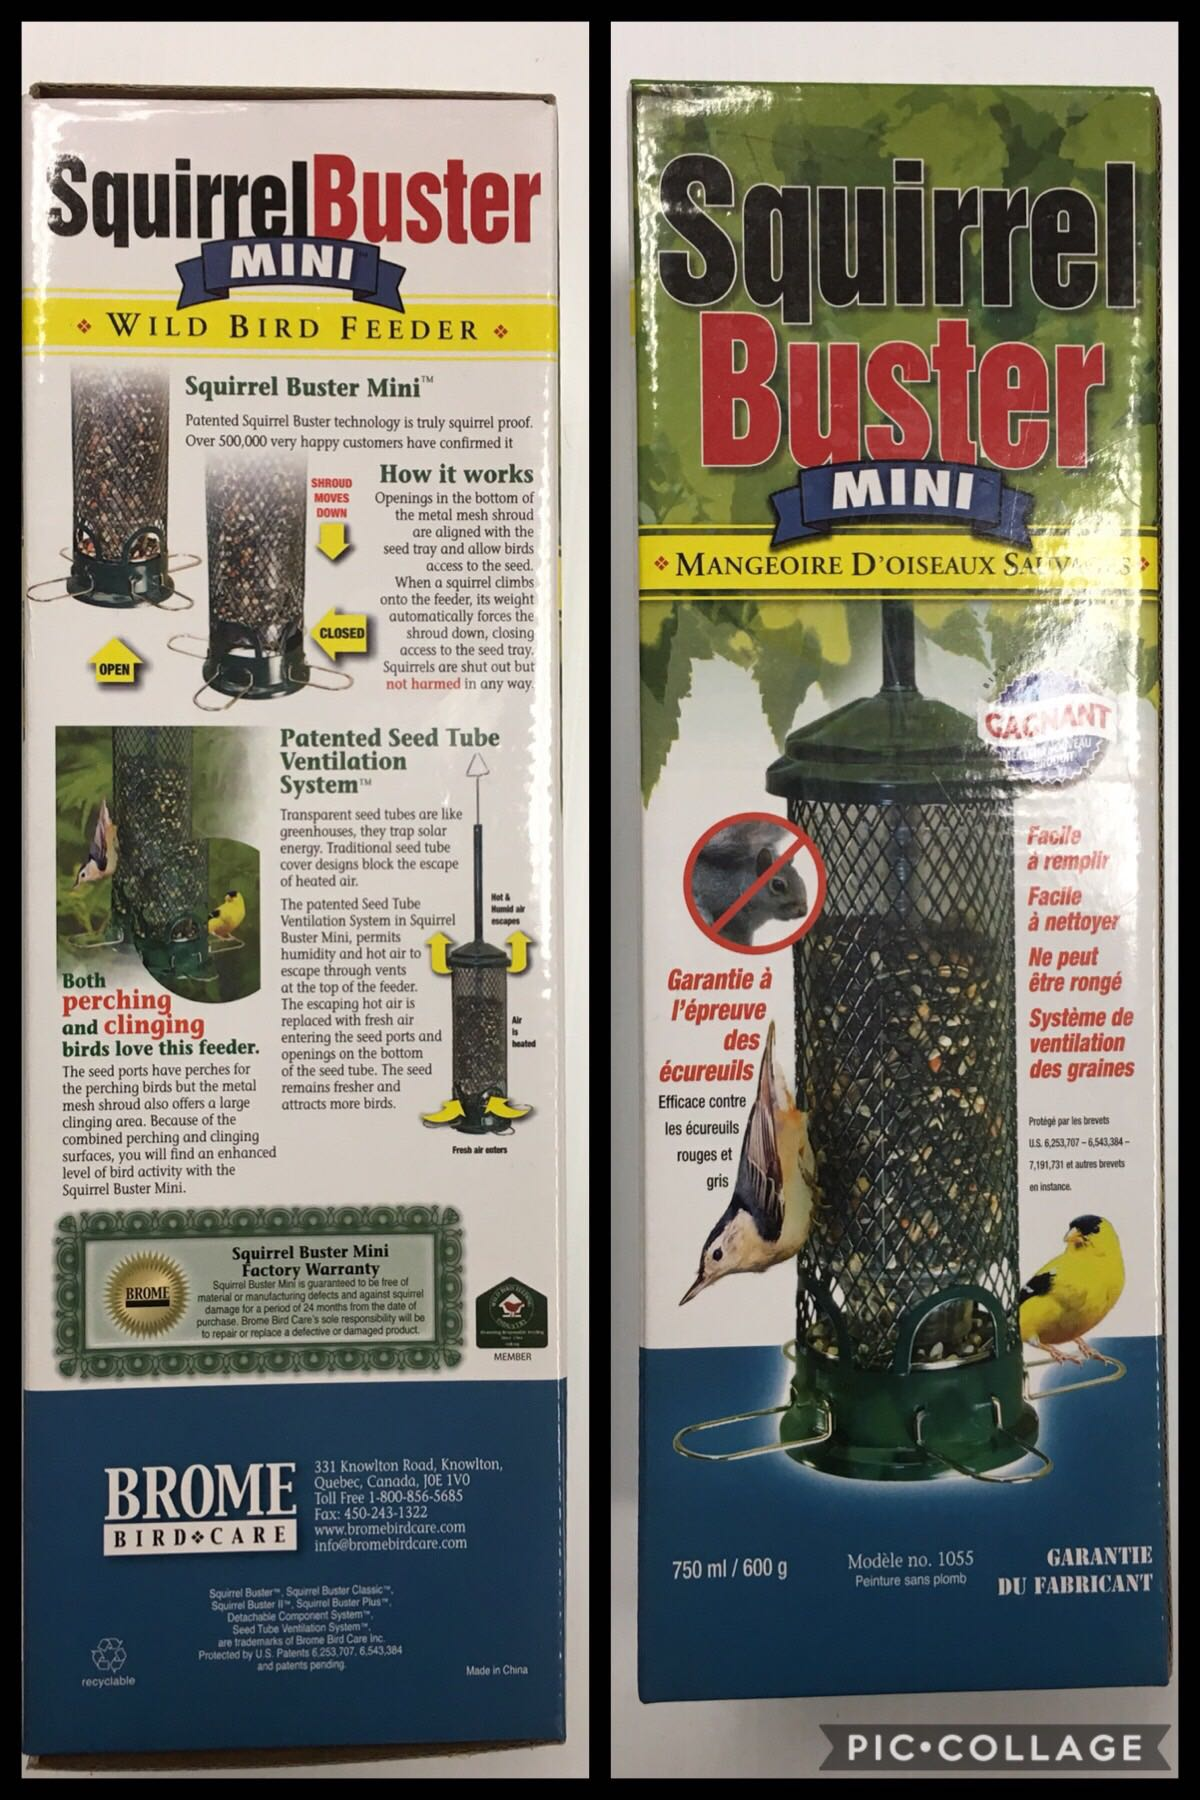 Squirrel Buster Mini Bird Feeder